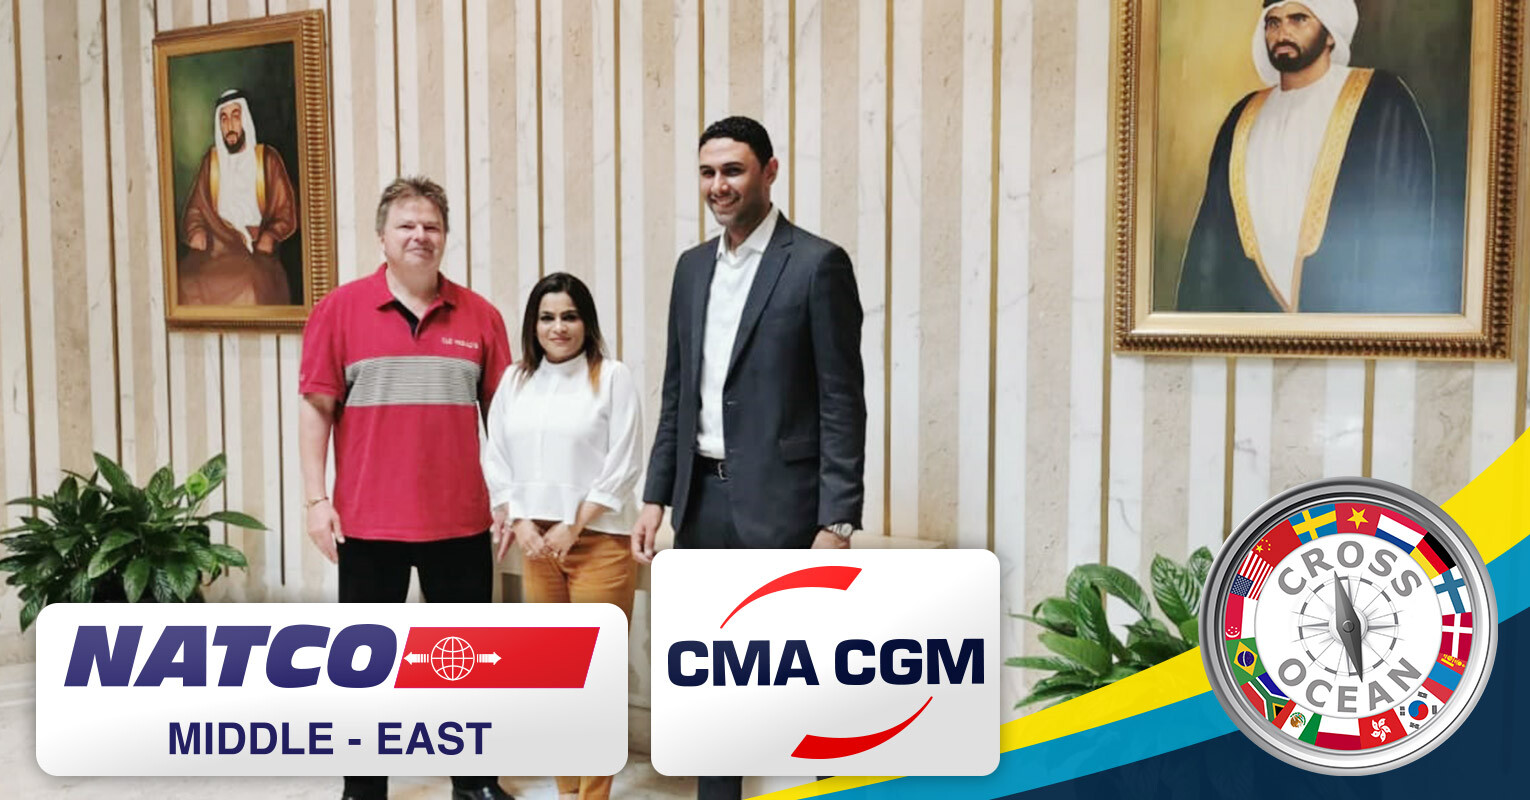 Cross-Ocean-Chairman-met-with-NATCO-and-CMA-CGM-in-Dubai